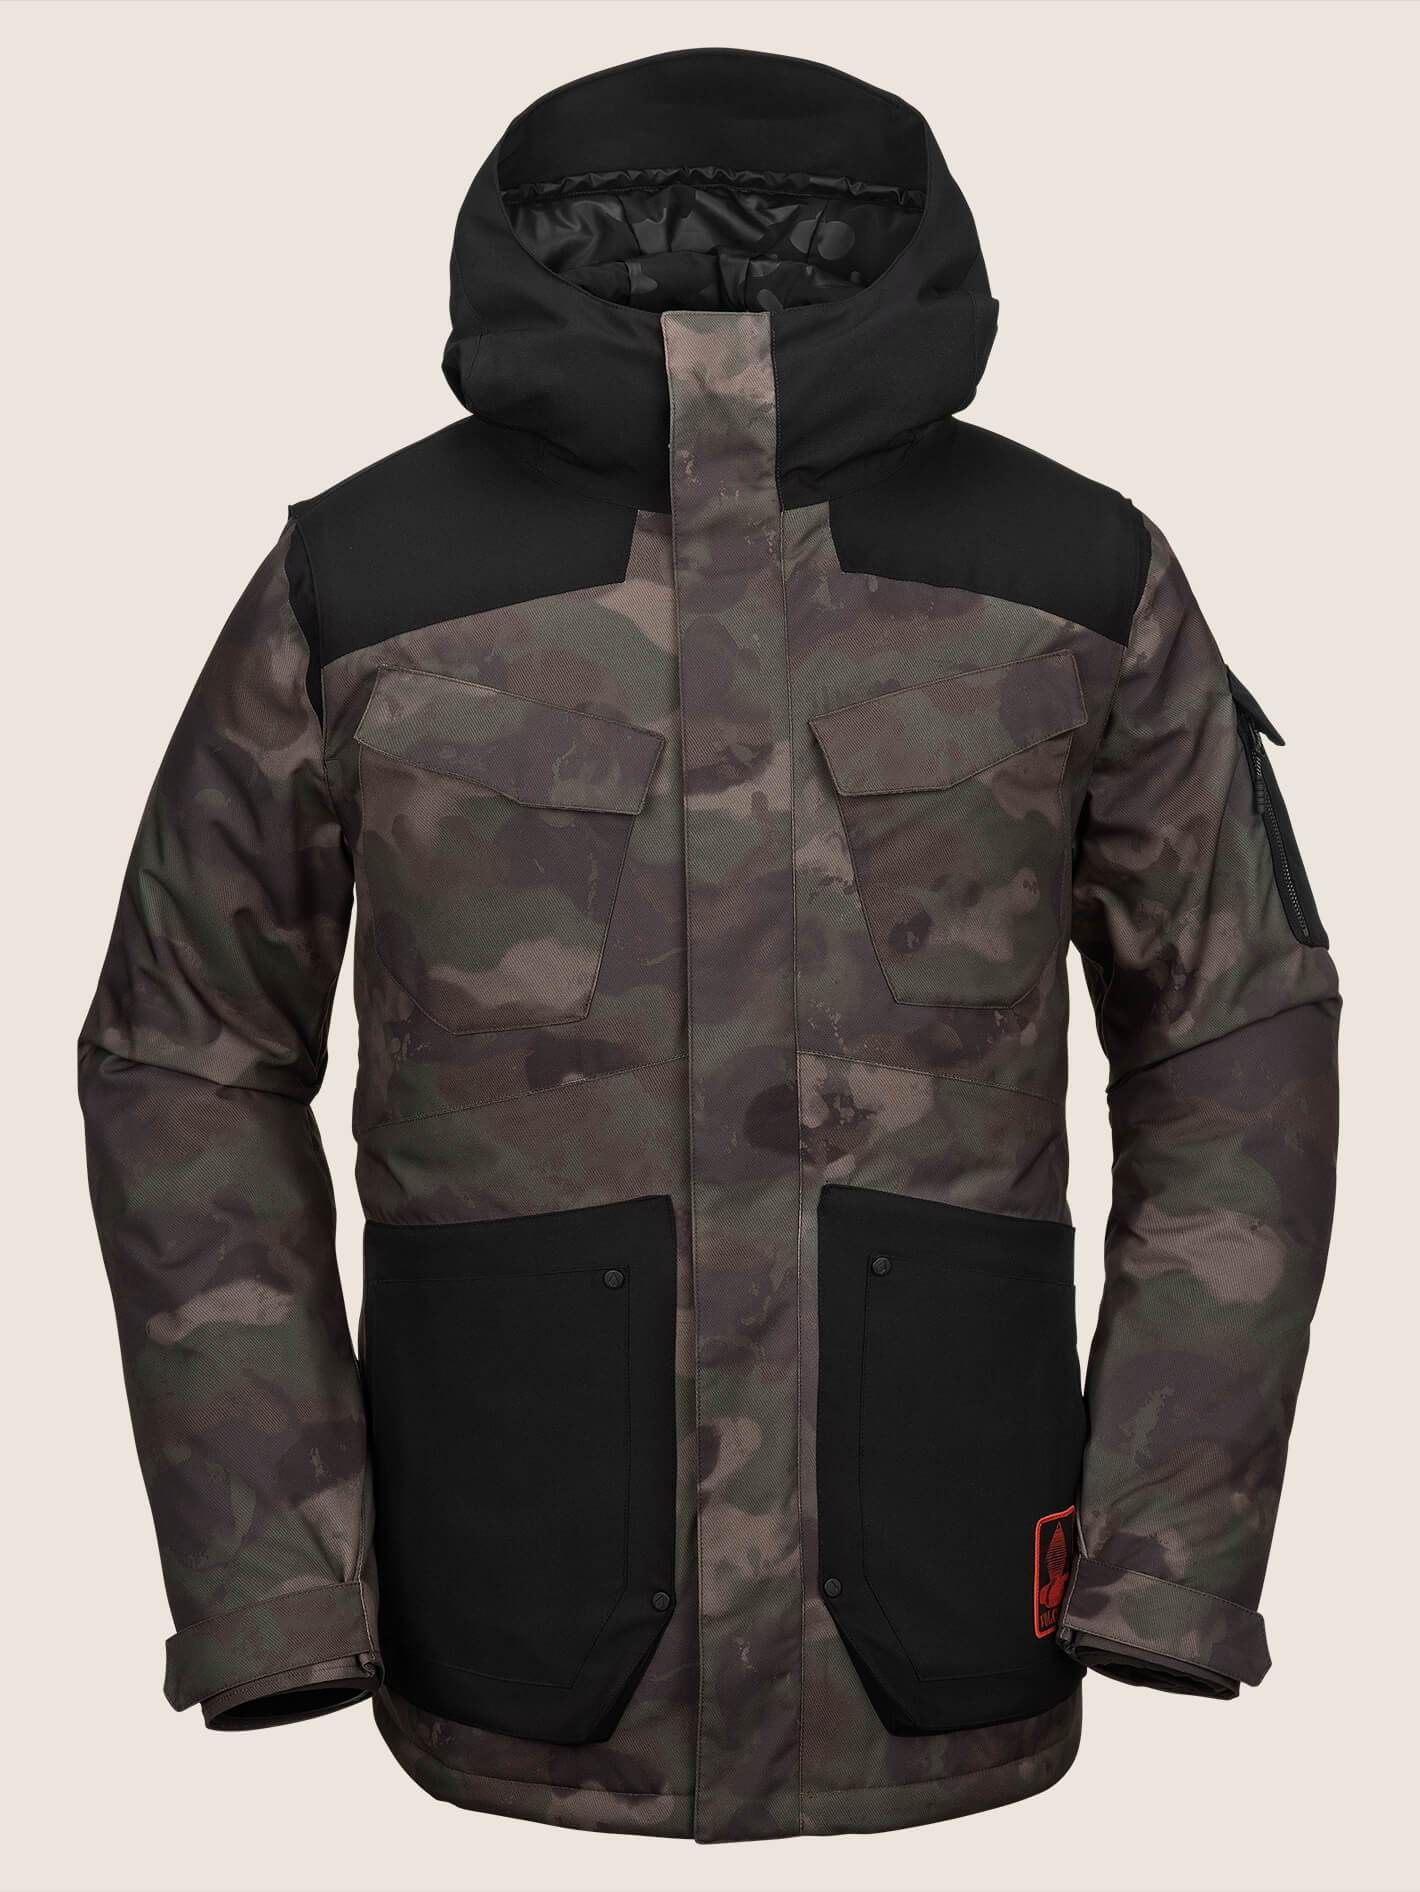 9510f7f5 Vco Inferno Jacket in 2019 | Products | Jackets, Snowboard pants ...